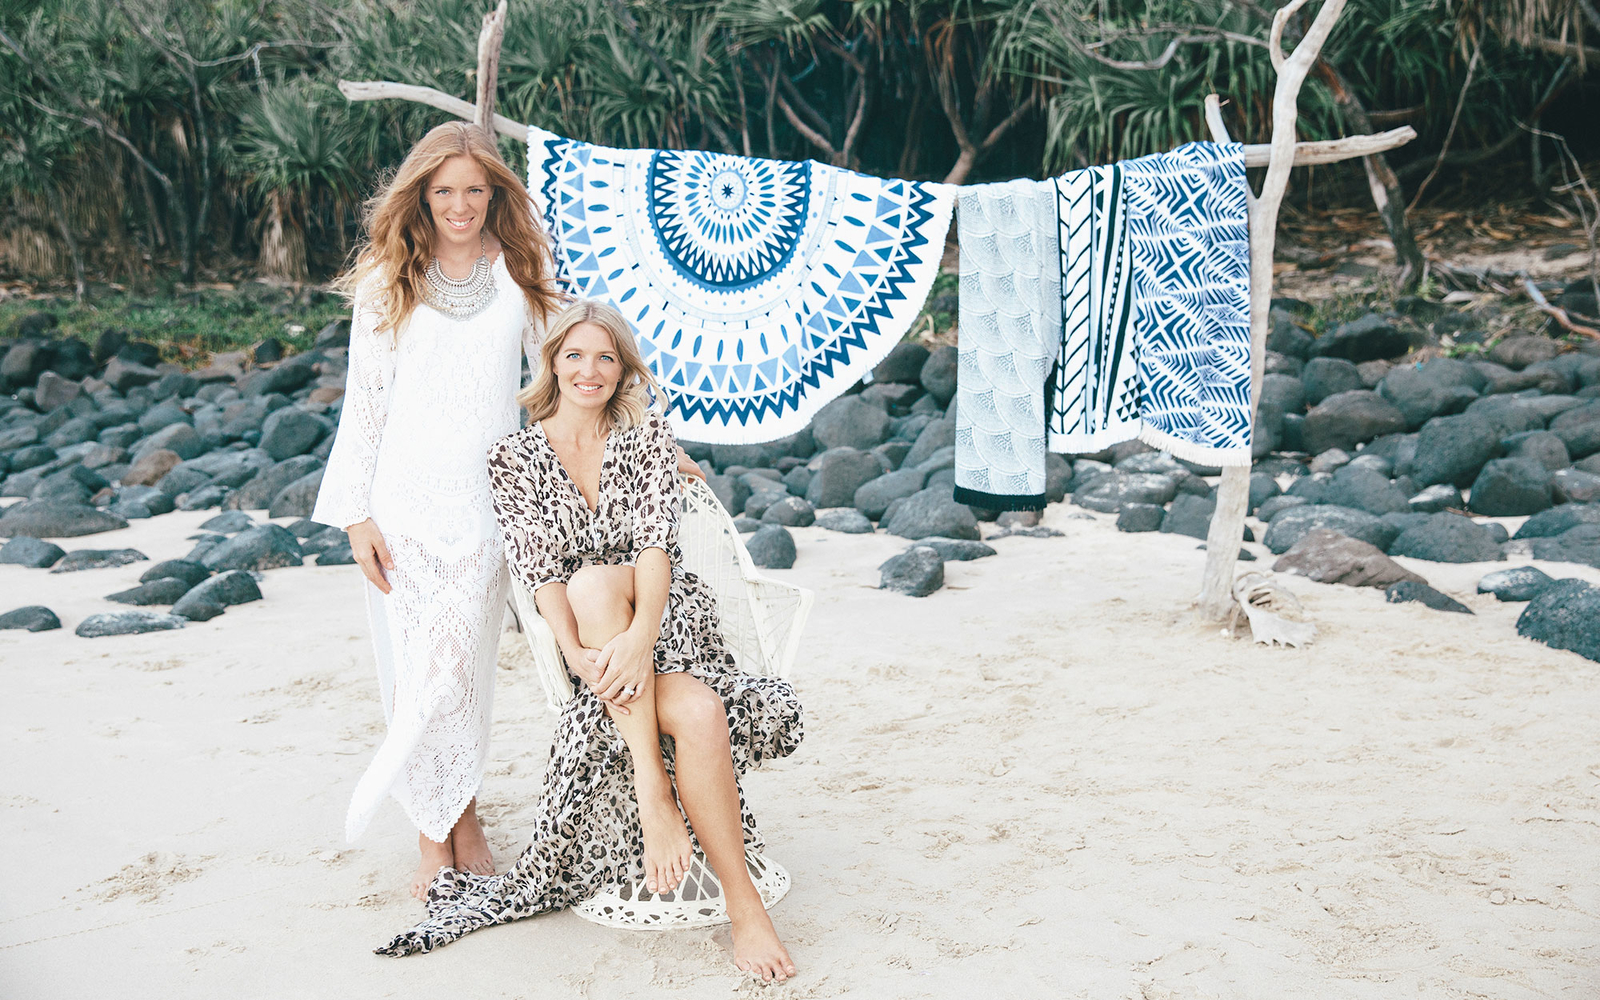 Beach Travel Tips From the Sisters Behind Those Coveted Round Towels